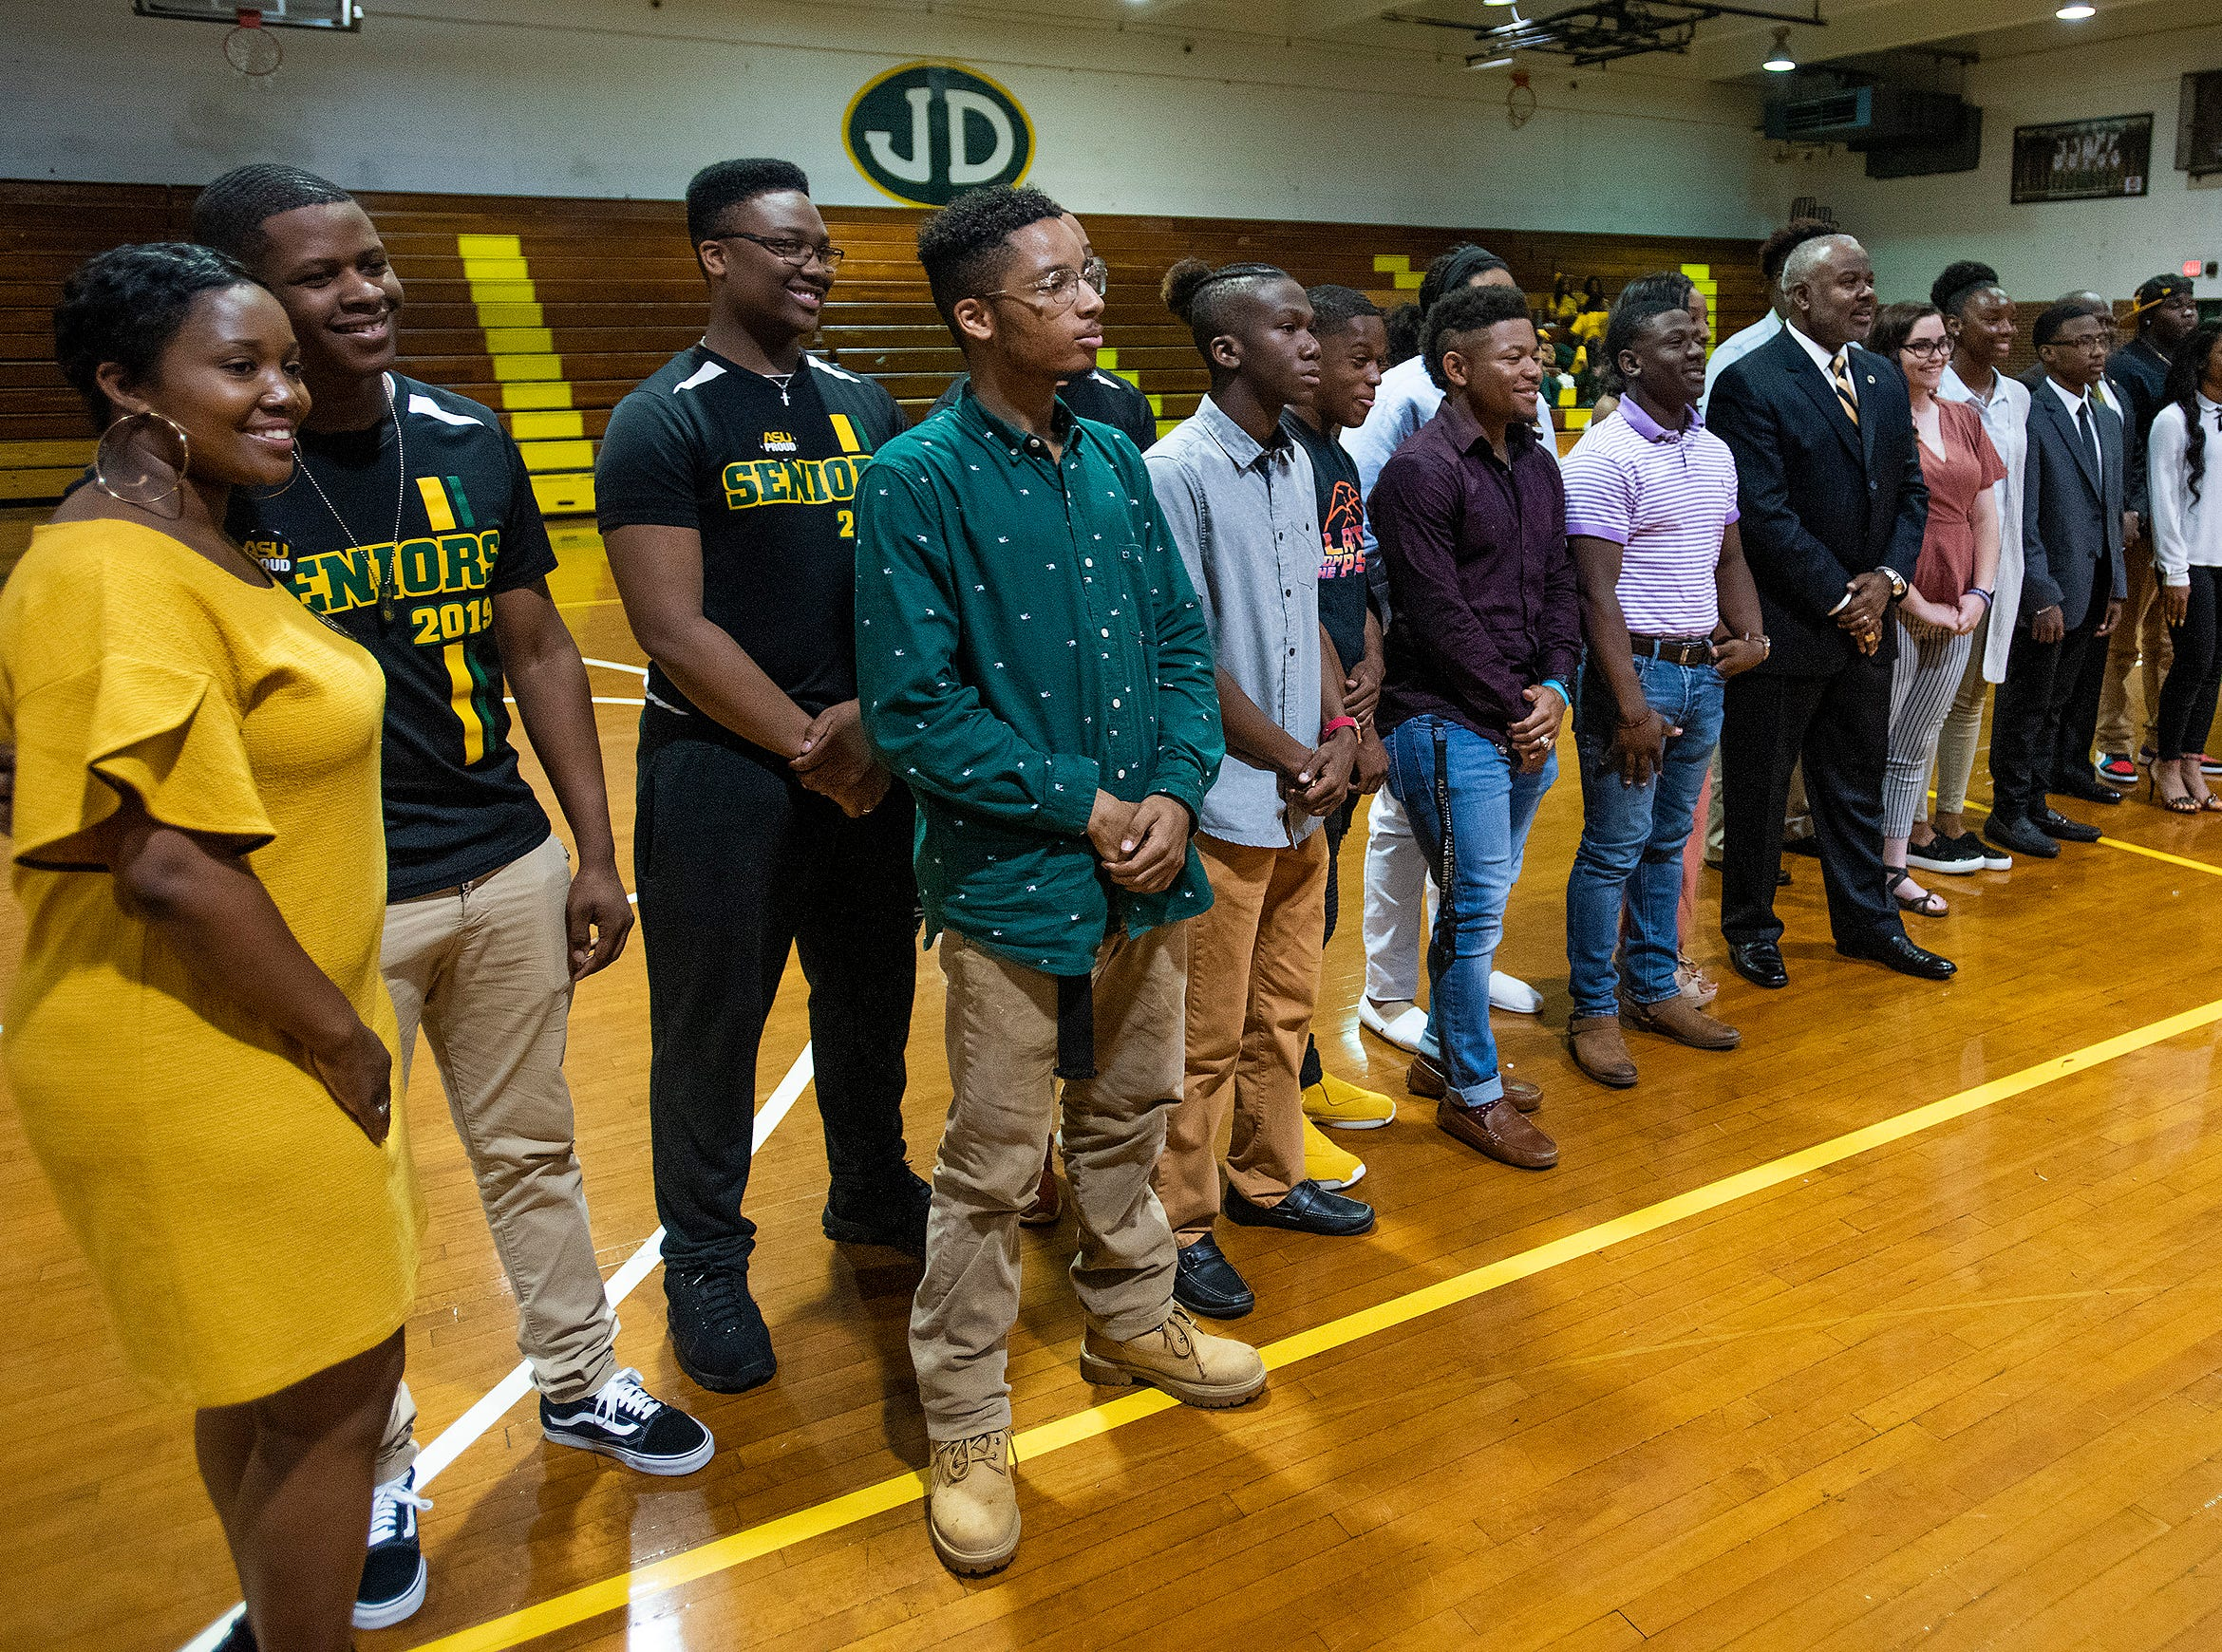 Alabama State University President Quinton Ross poses for photos with Jeff Davis High School students that received scholarships to ASU during the ASU President's Tour stop at the school in Montgomery, Ala., on Friday April 12, 2019.